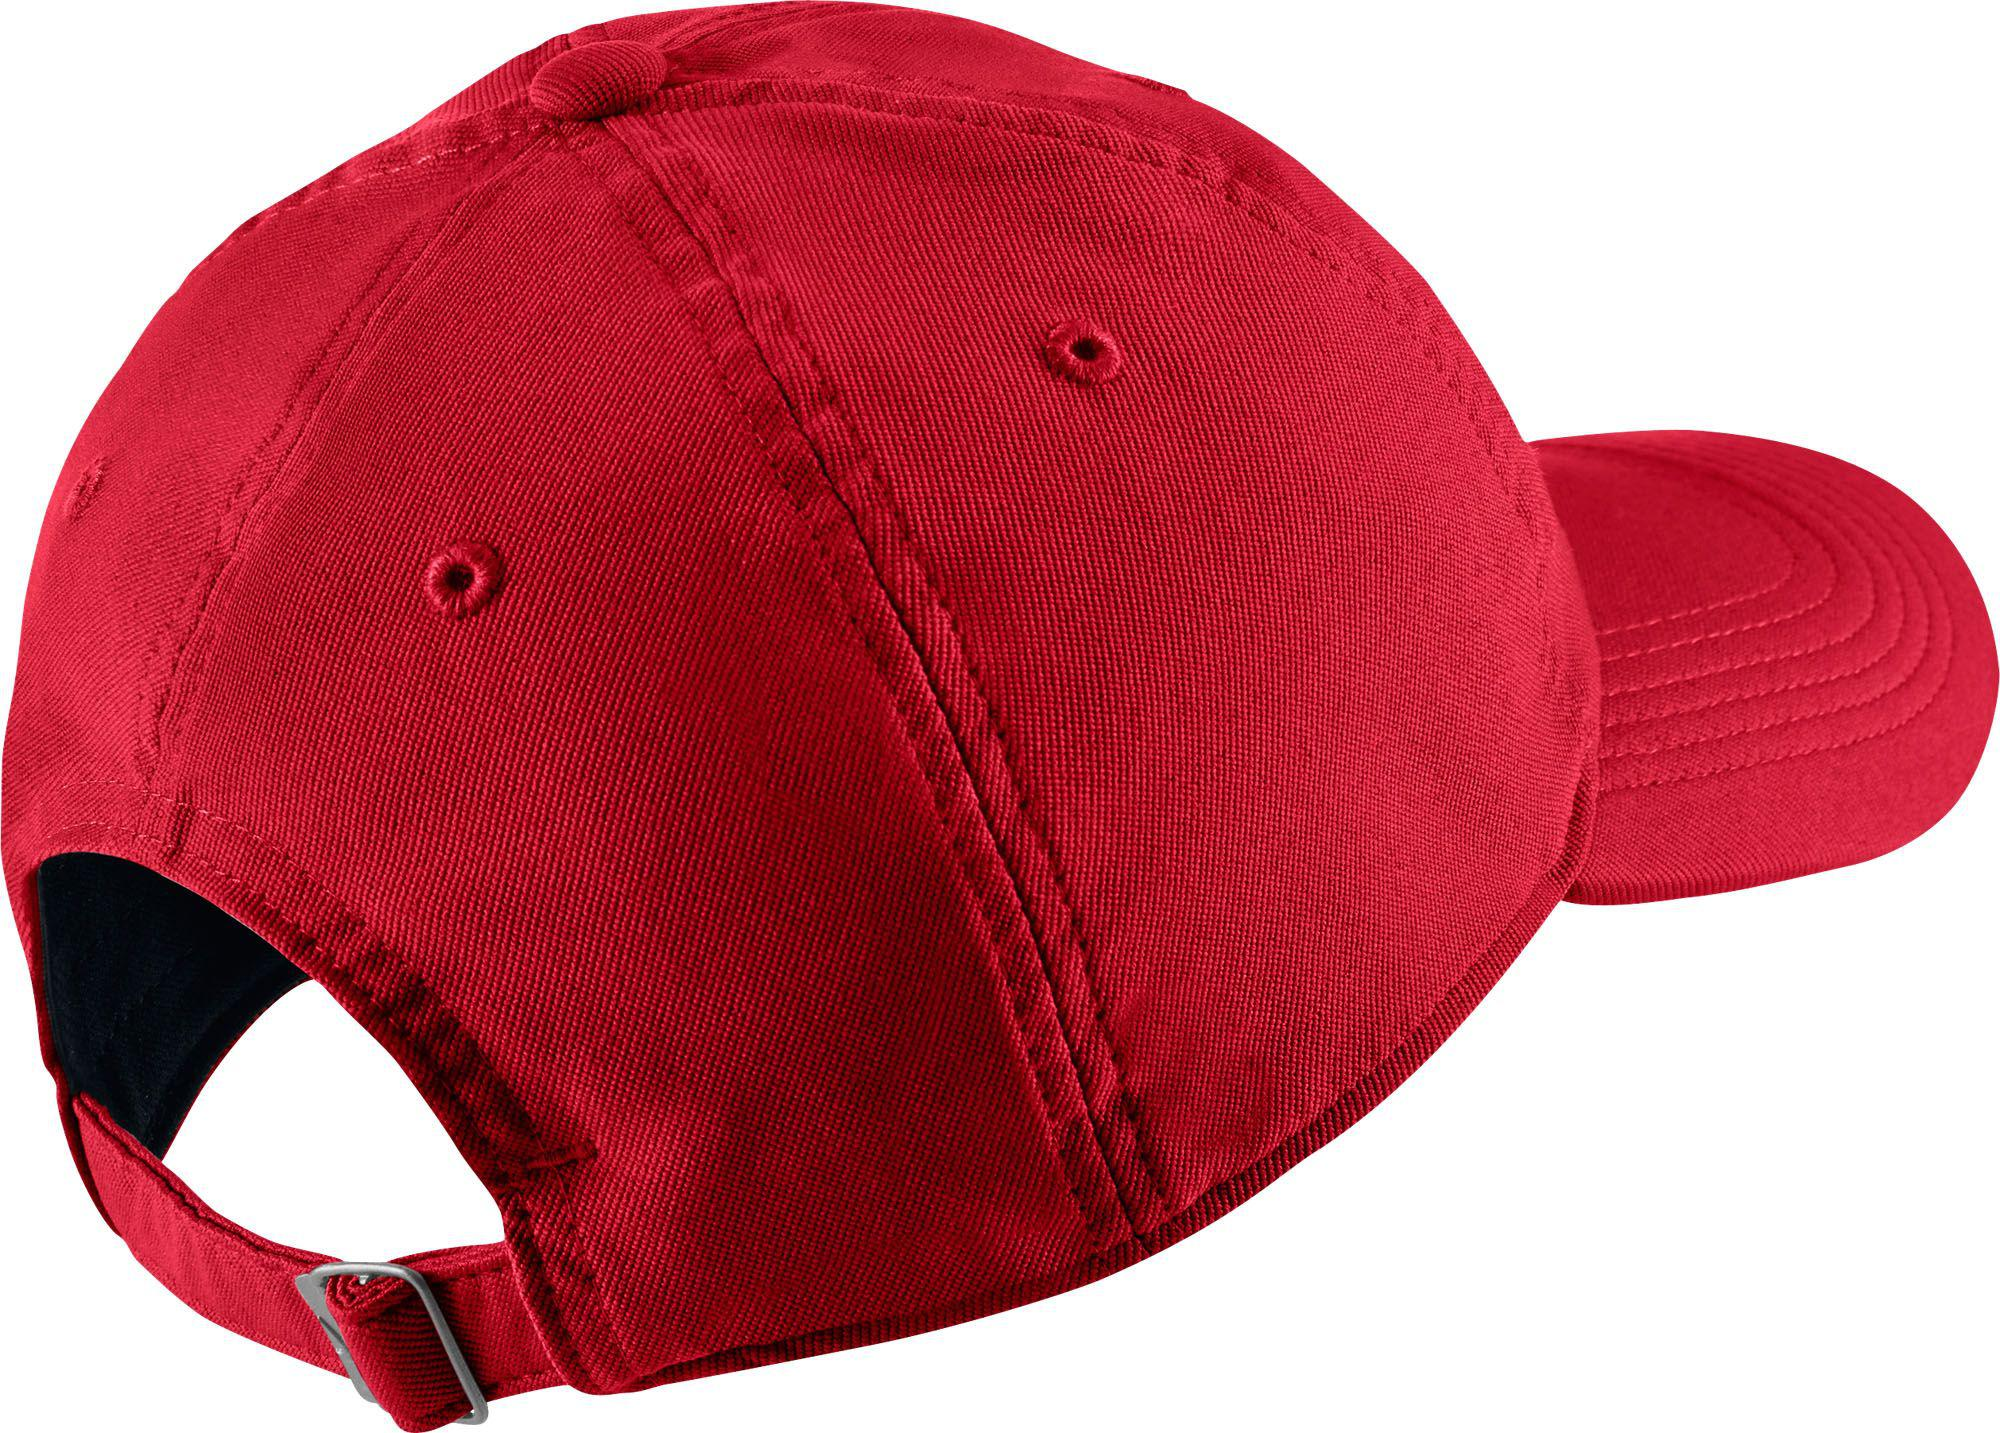 8196f02e8a8 Lyst - Nike Twill H86 Adjustable Hat in Red for Men